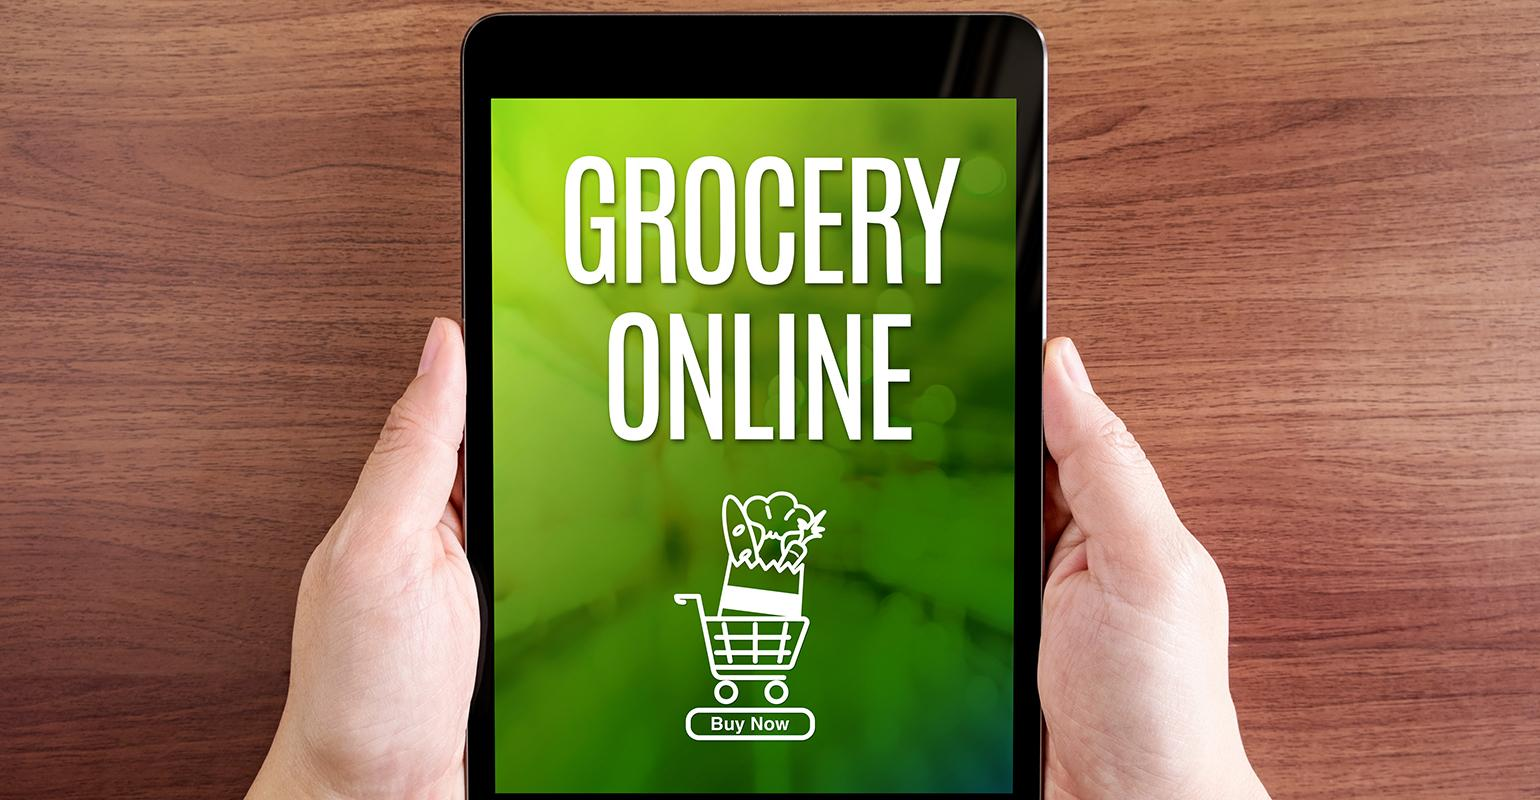 Could Facebook kick-start CPG direct selling? | Supermarket News